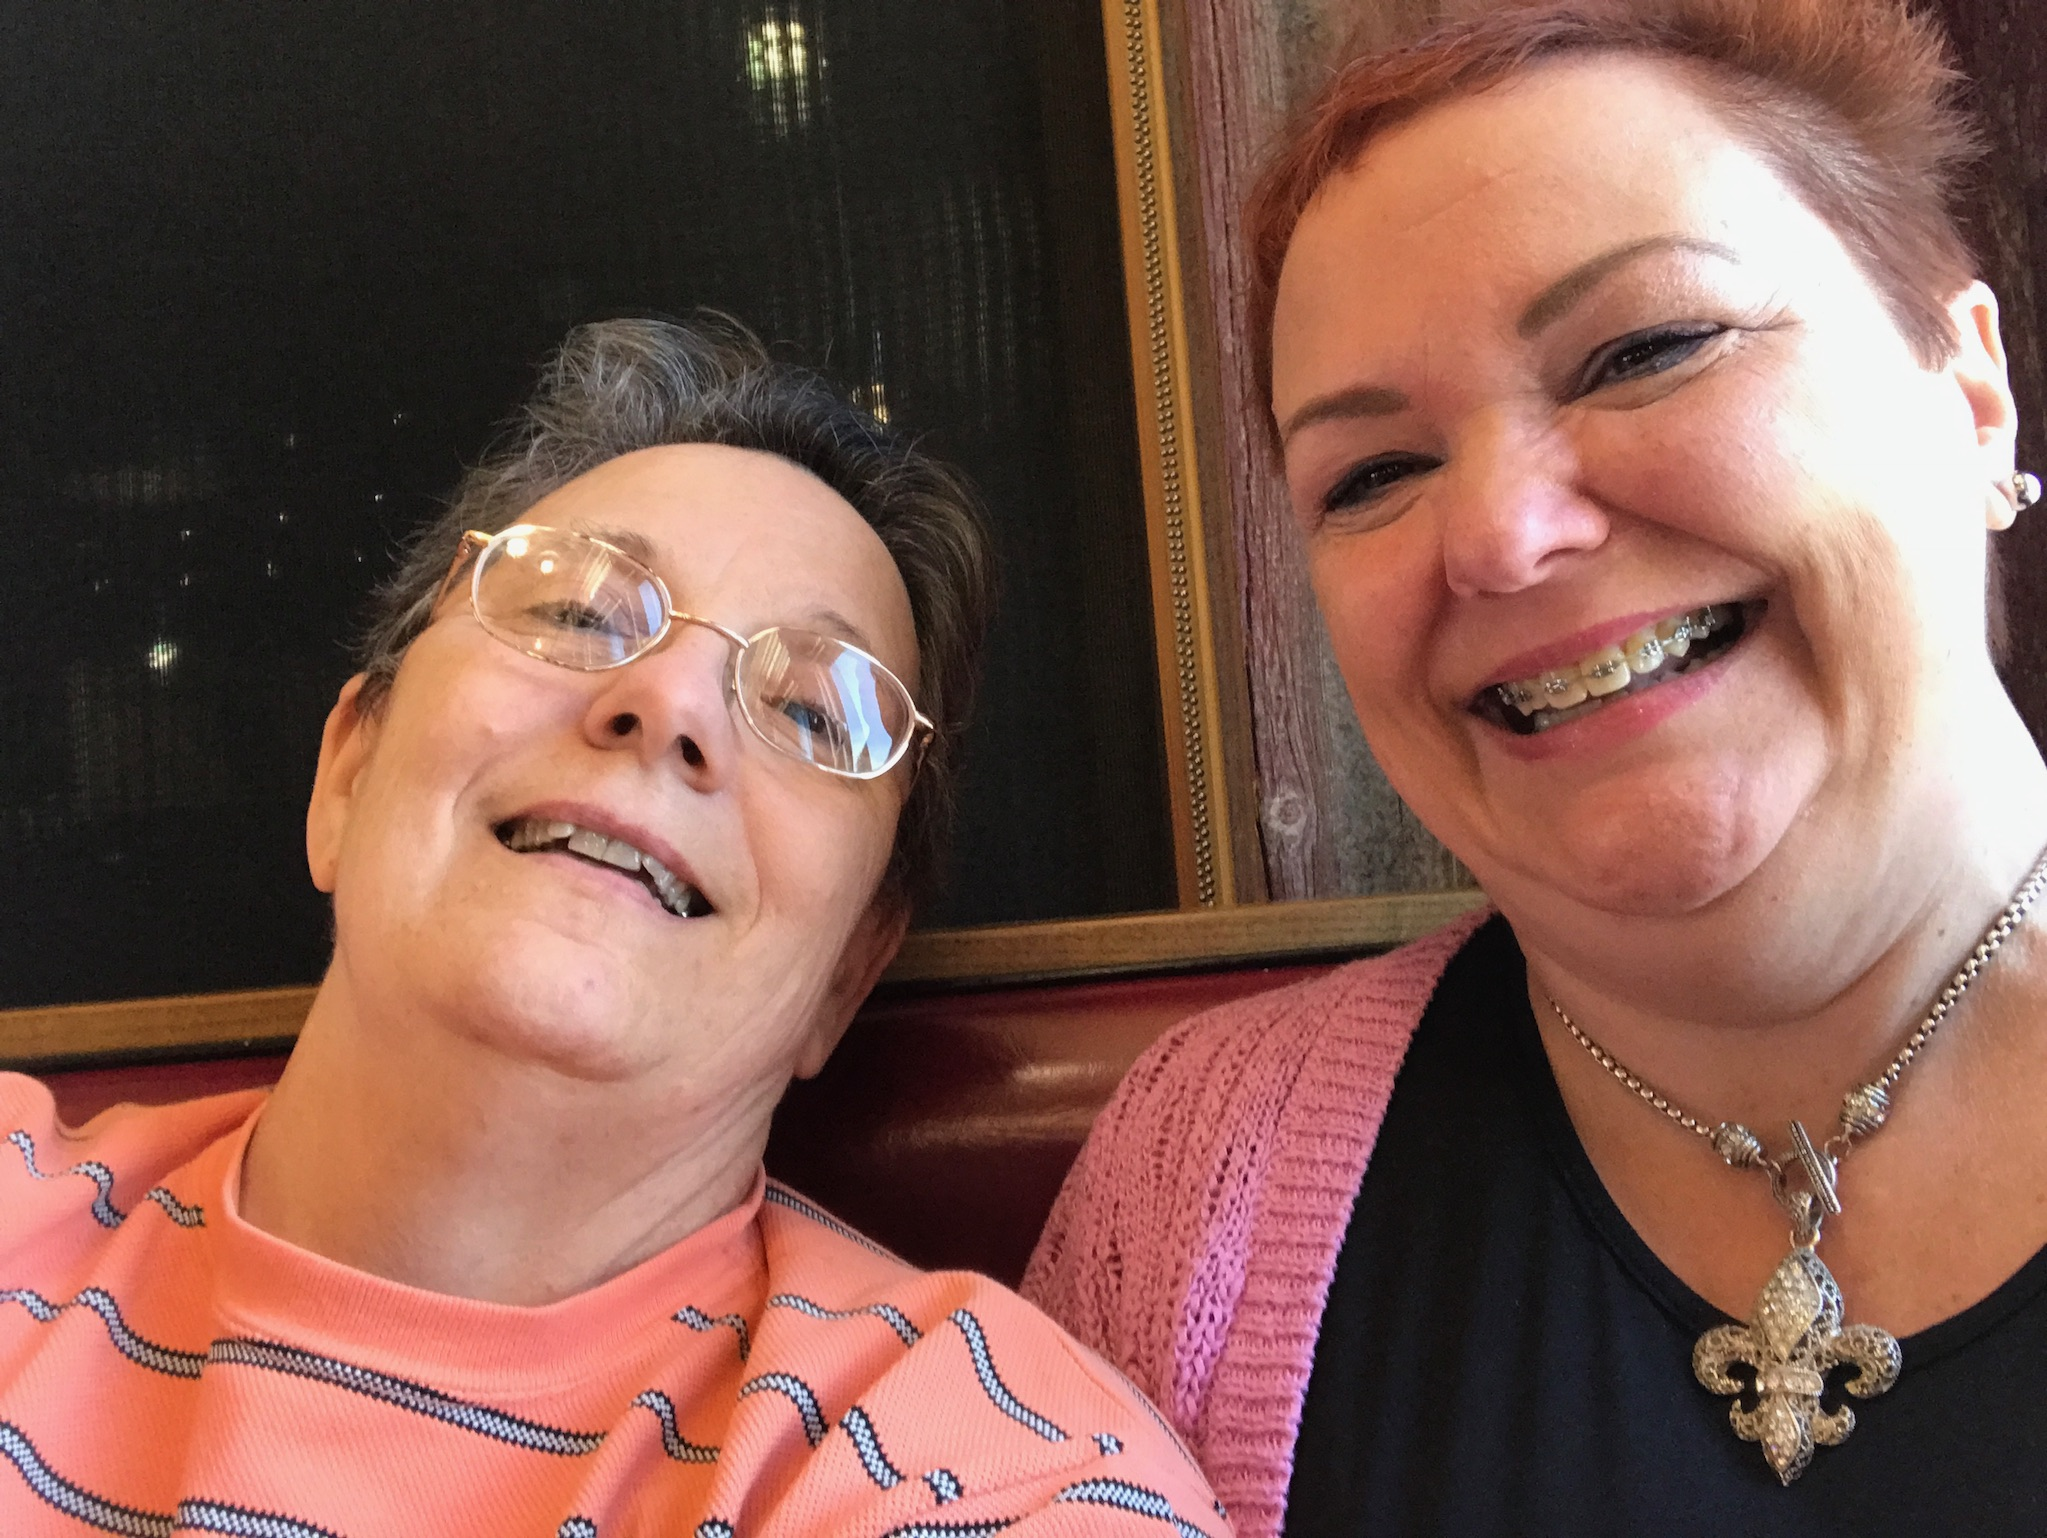 Lori (right) and me after a good lunch and fun time at lunch today.  Photo taken by and the property of FourWalls.